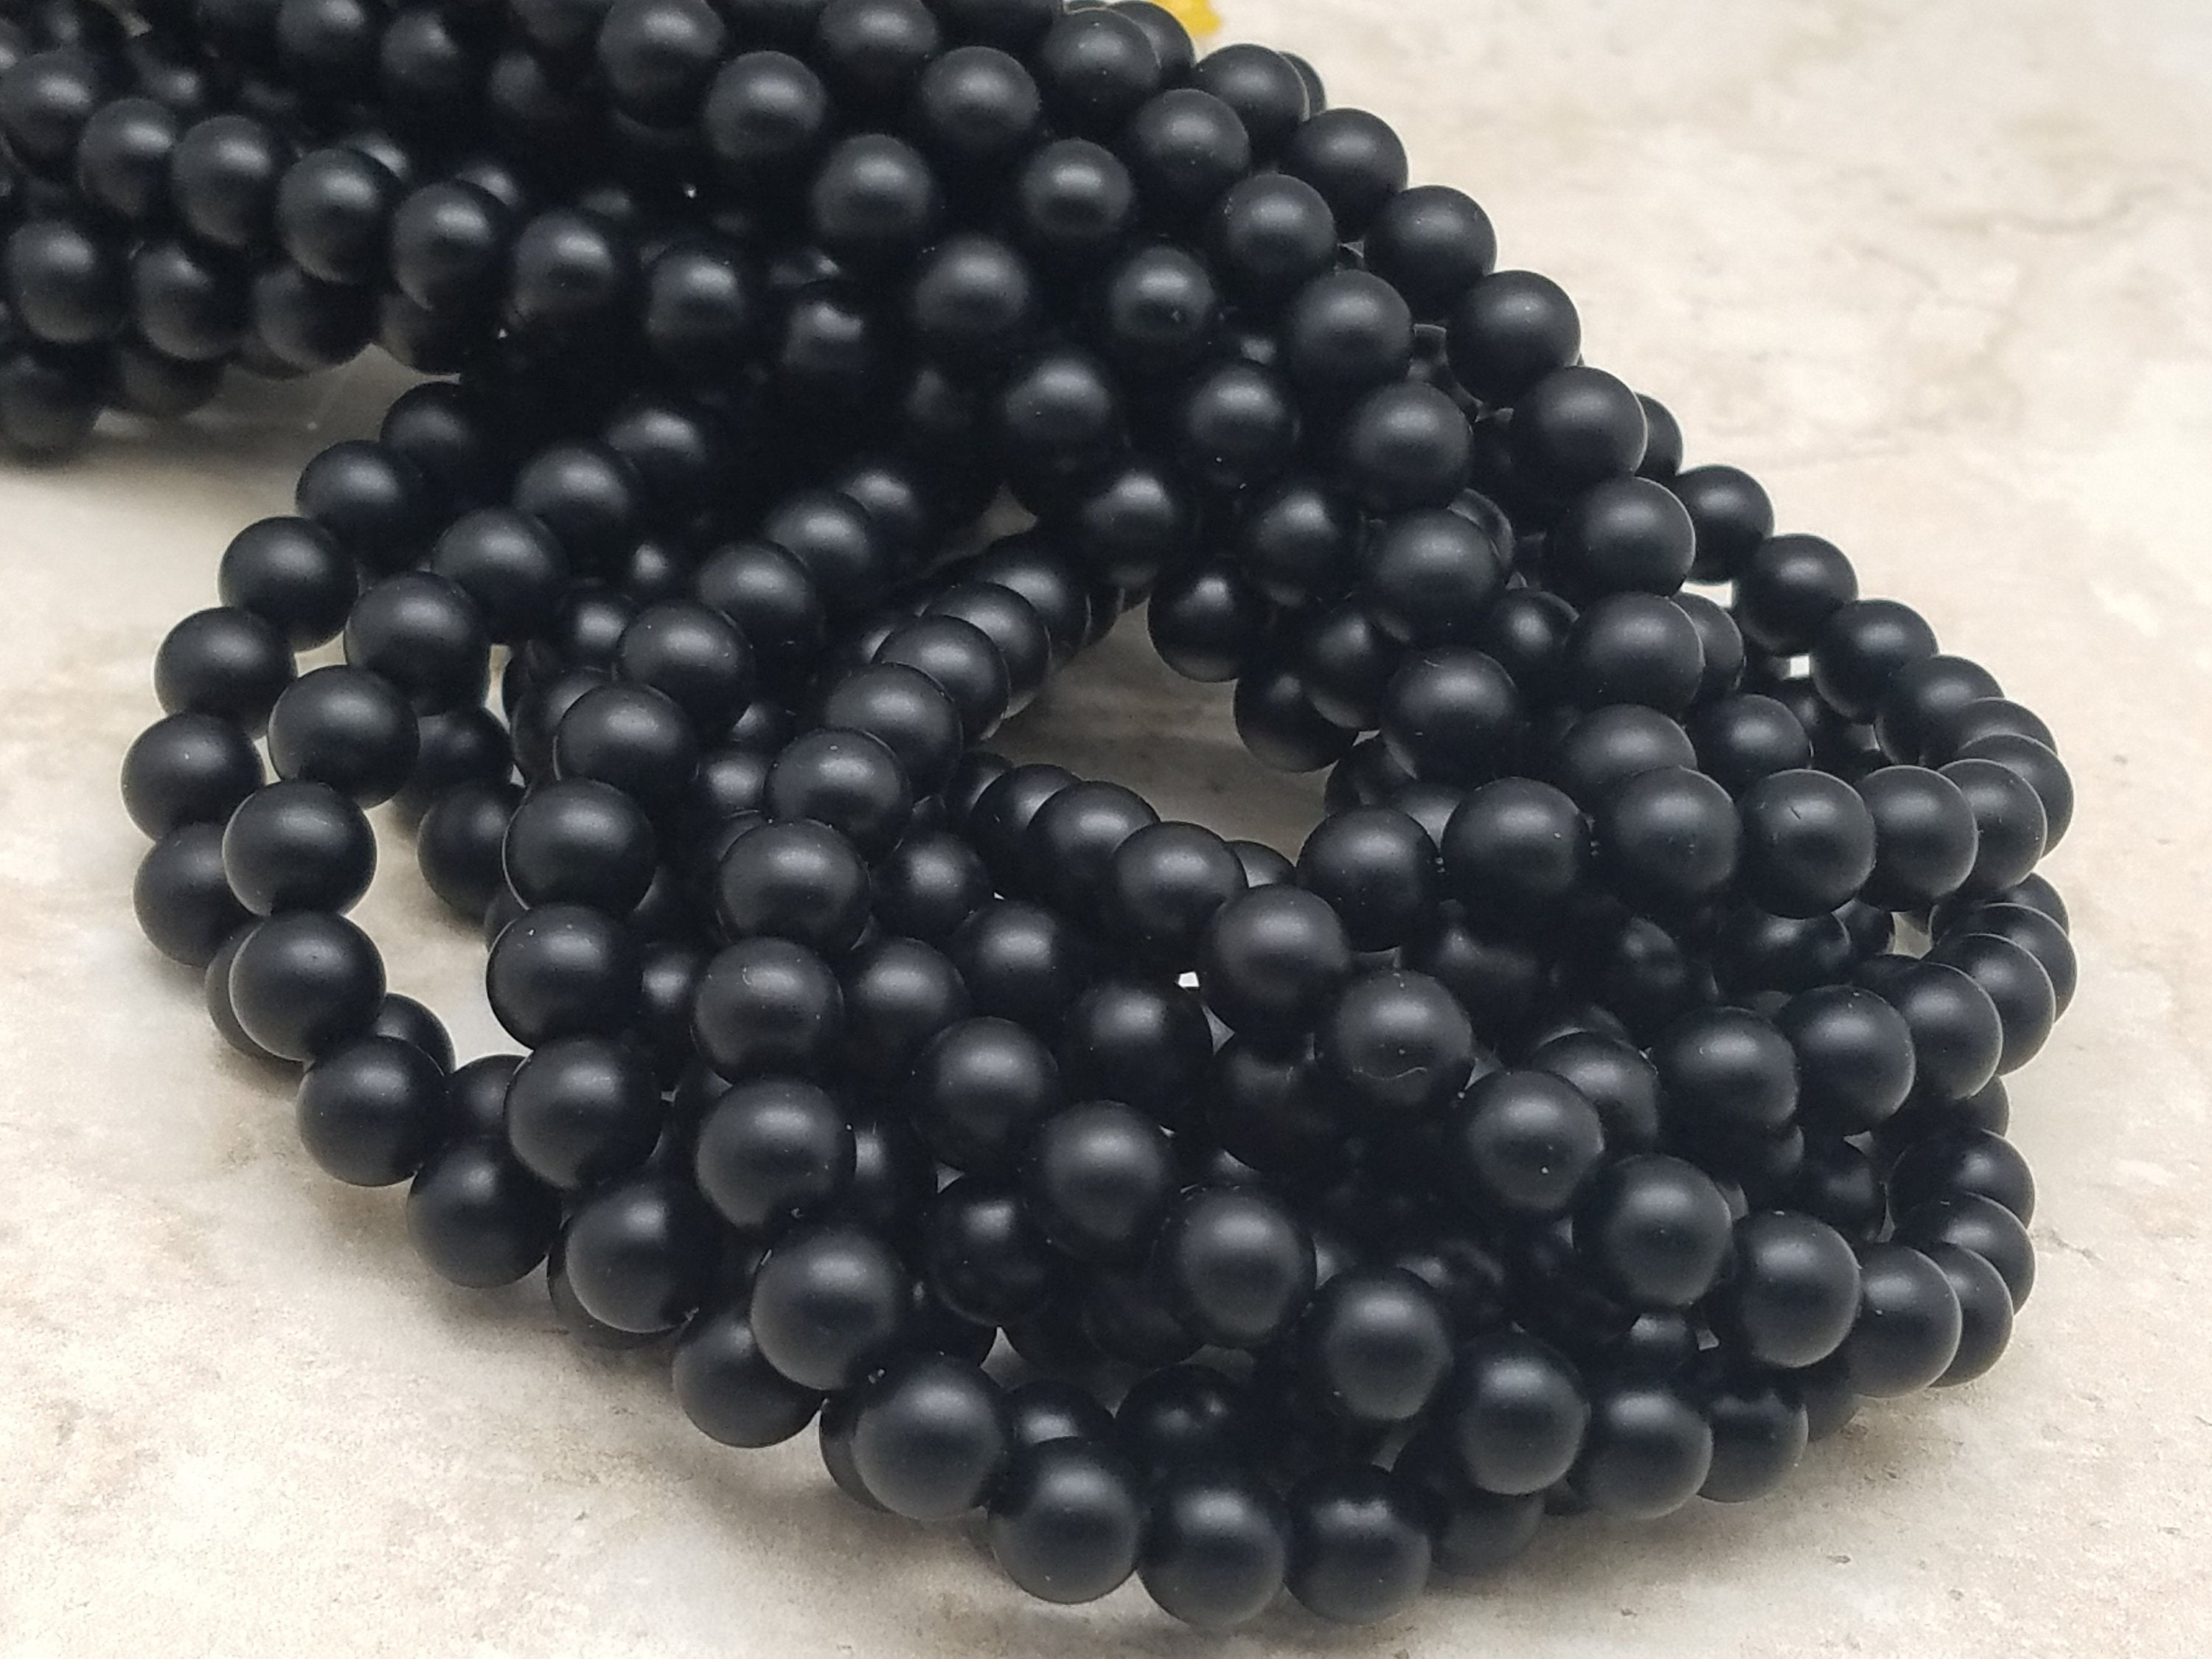 4mm or 6mm or 8mm Black Agate Matte Round Beads, 15 inch